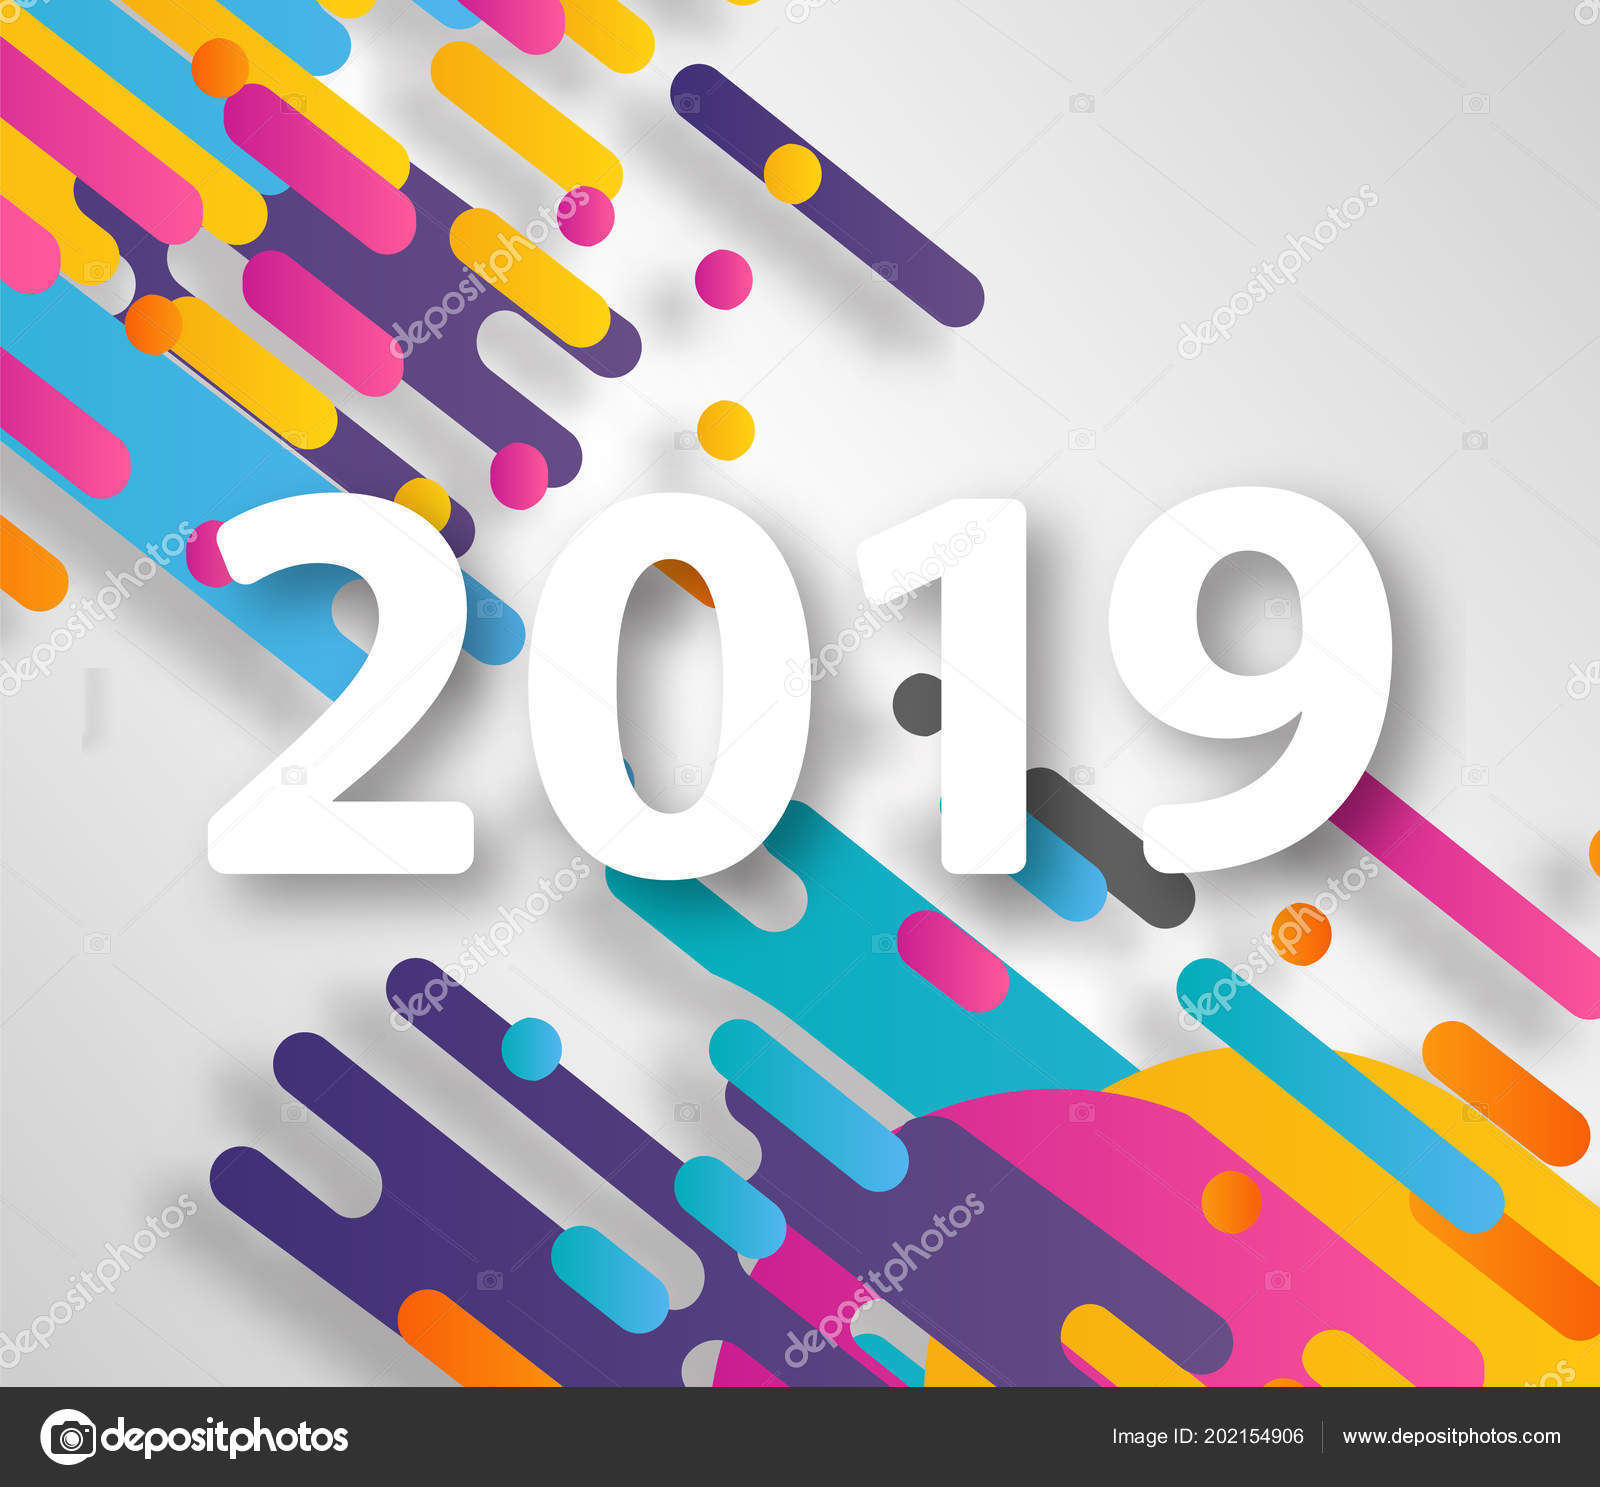 2019 new year on the background of a colorful halftone hipster design element for presentations flyers leaflets postcards and posters